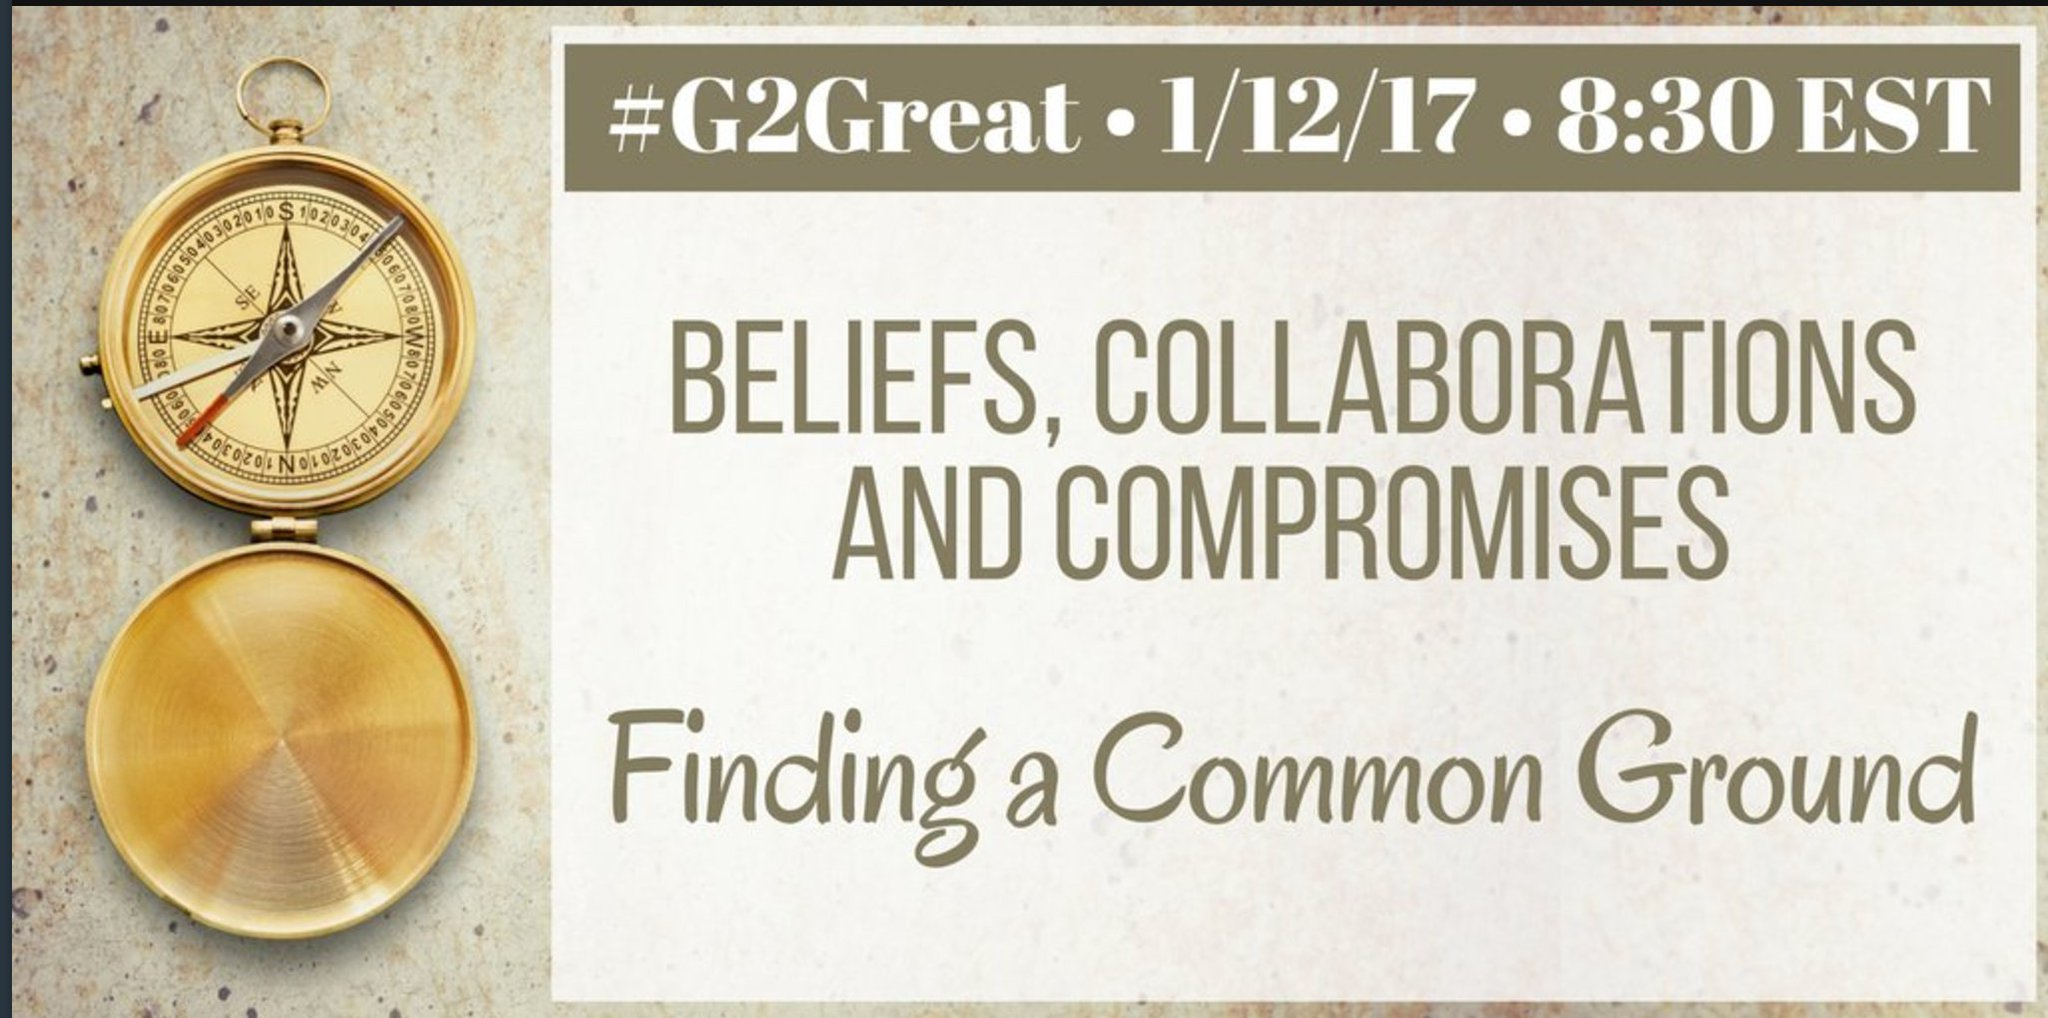 Looking forward to seeing all our #G2Great PLN tonight! https://t.co/sZEm8ogcxi